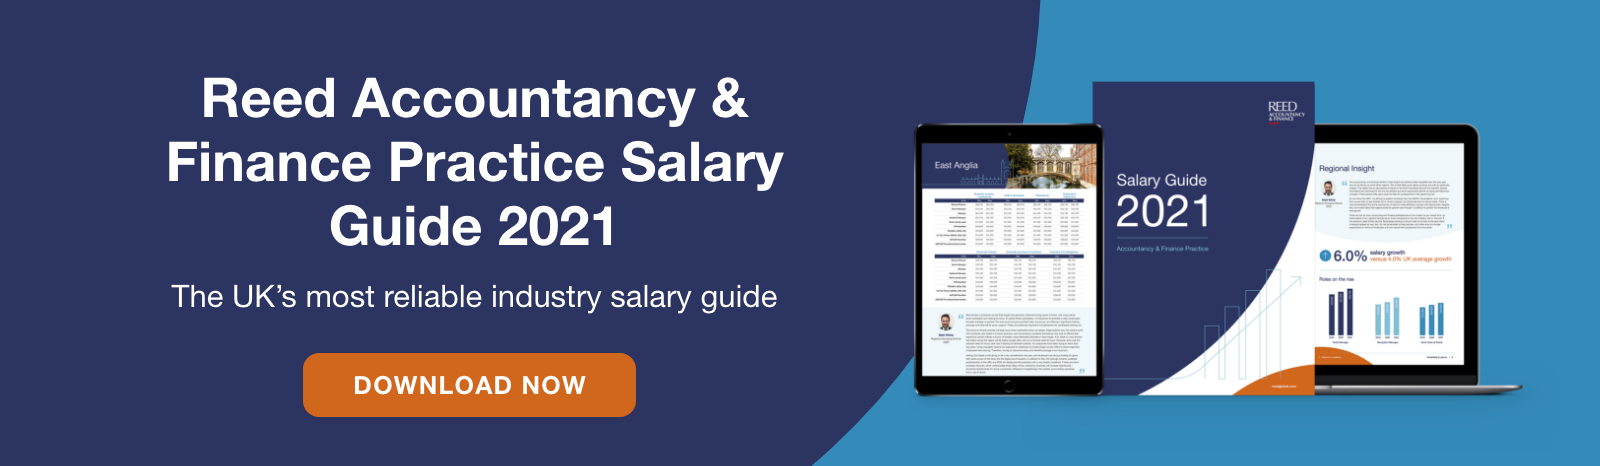 The Reed Accountancy & Finance Practice 2021 Salary Guide features the practice salary data you need to understand the market rate and know your worth